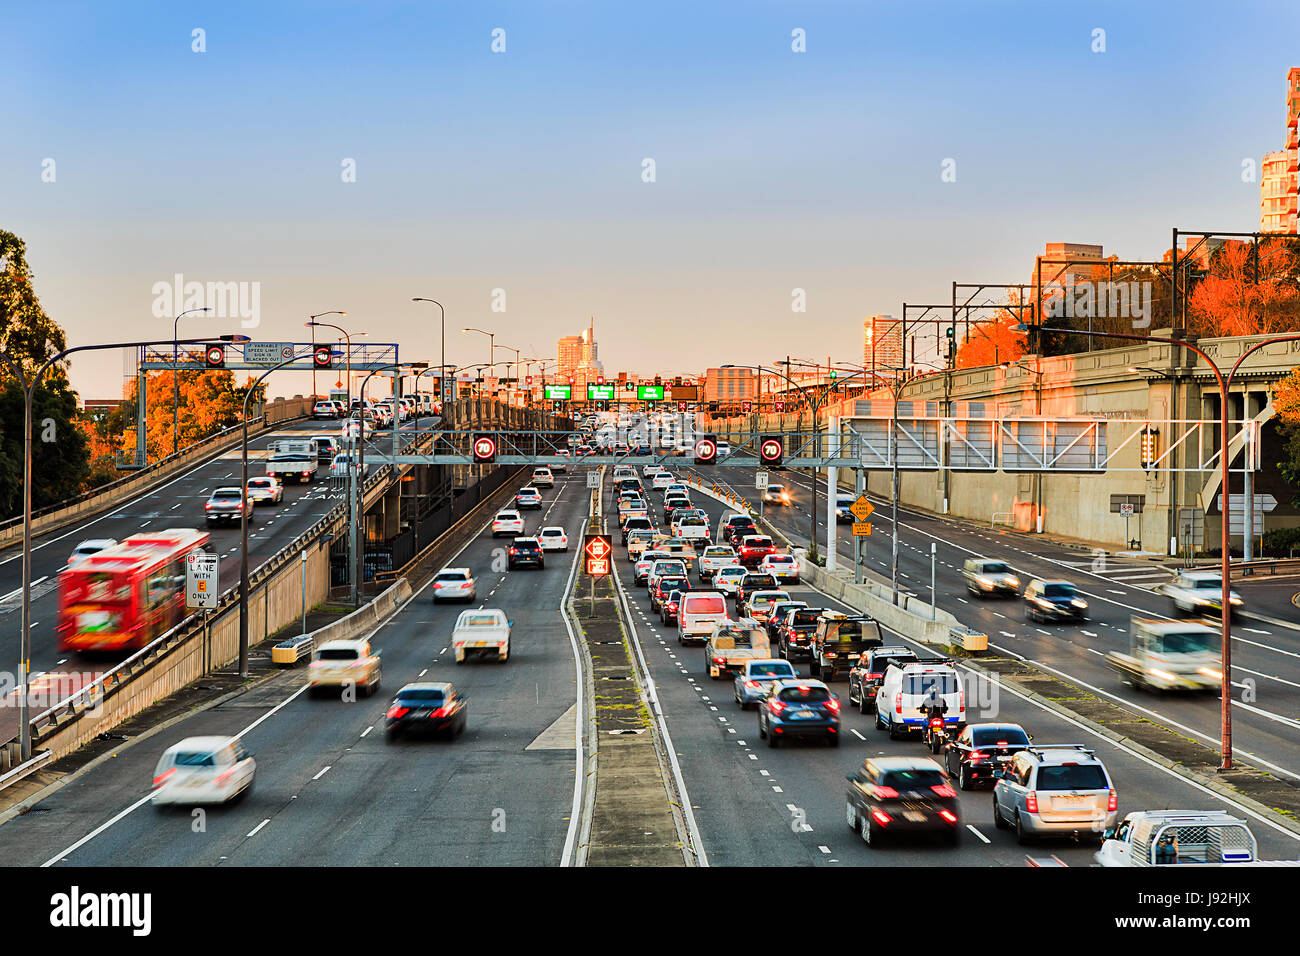 Warringah freeway heavy morning traffic going towards Sydney Harbour Bridge with lots of cars and motor vehicles - Stock Image